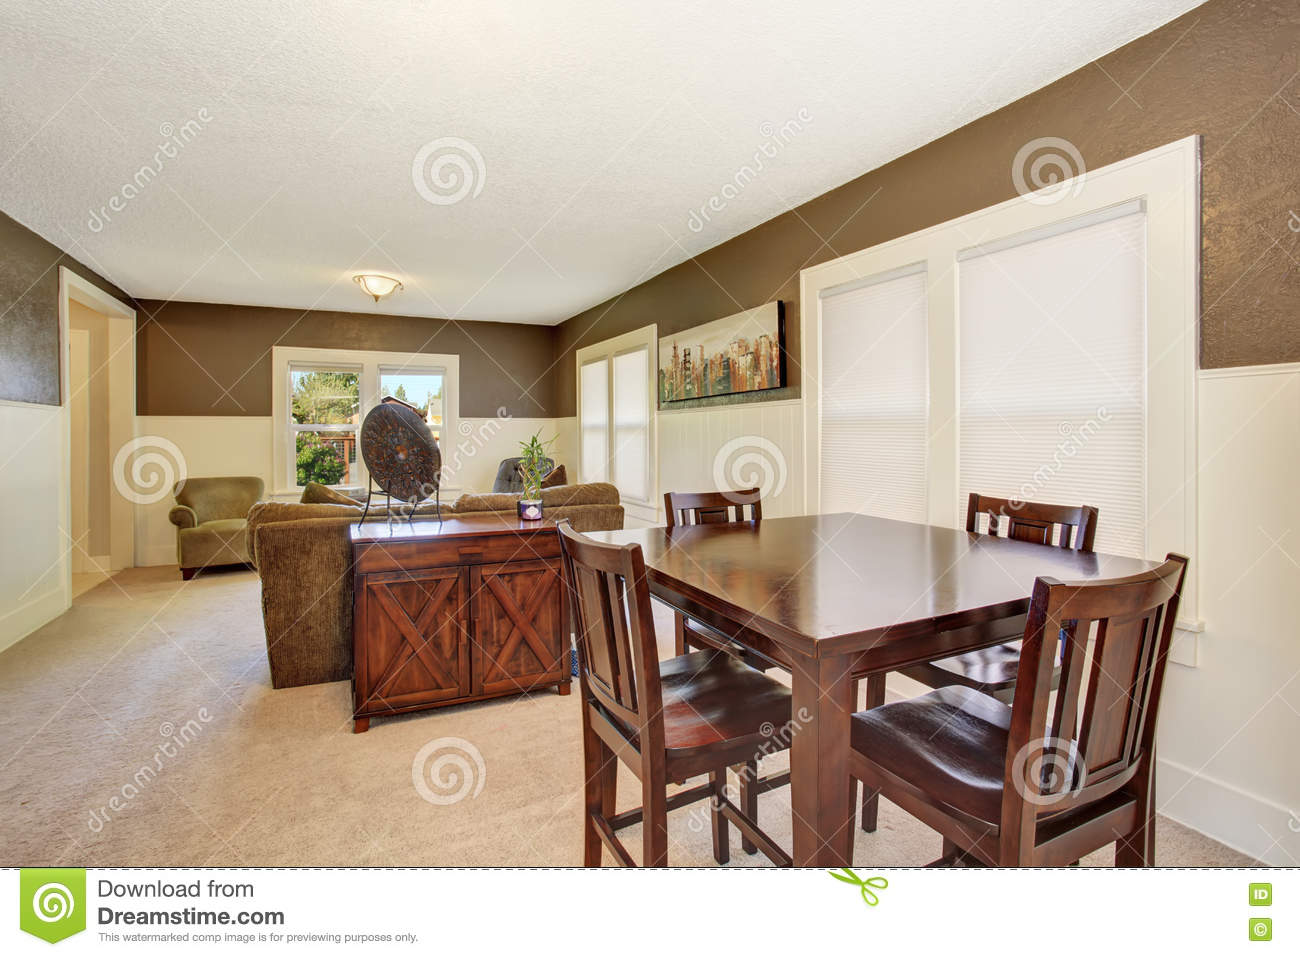 Interior Design Brown Wooden Table Set In The Dining Room With Beige Carpet Stock Image Image Of Colorful Estate 74363841